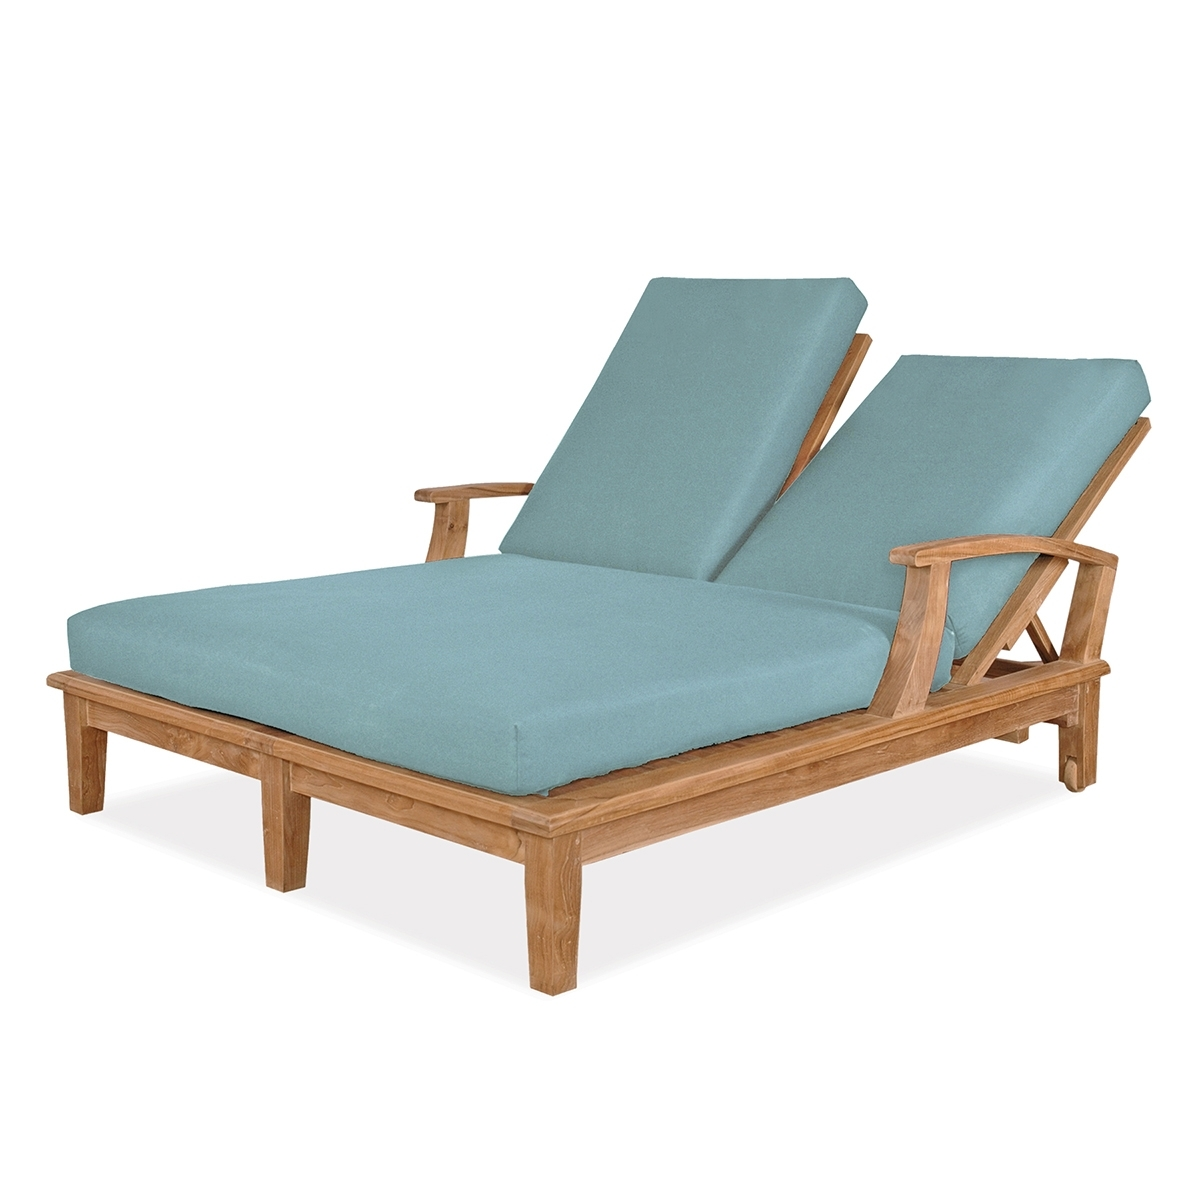 Fashionable Chaise Cushions Throughout Double Chaise Cushion Set Replacement (View 2 of 15)